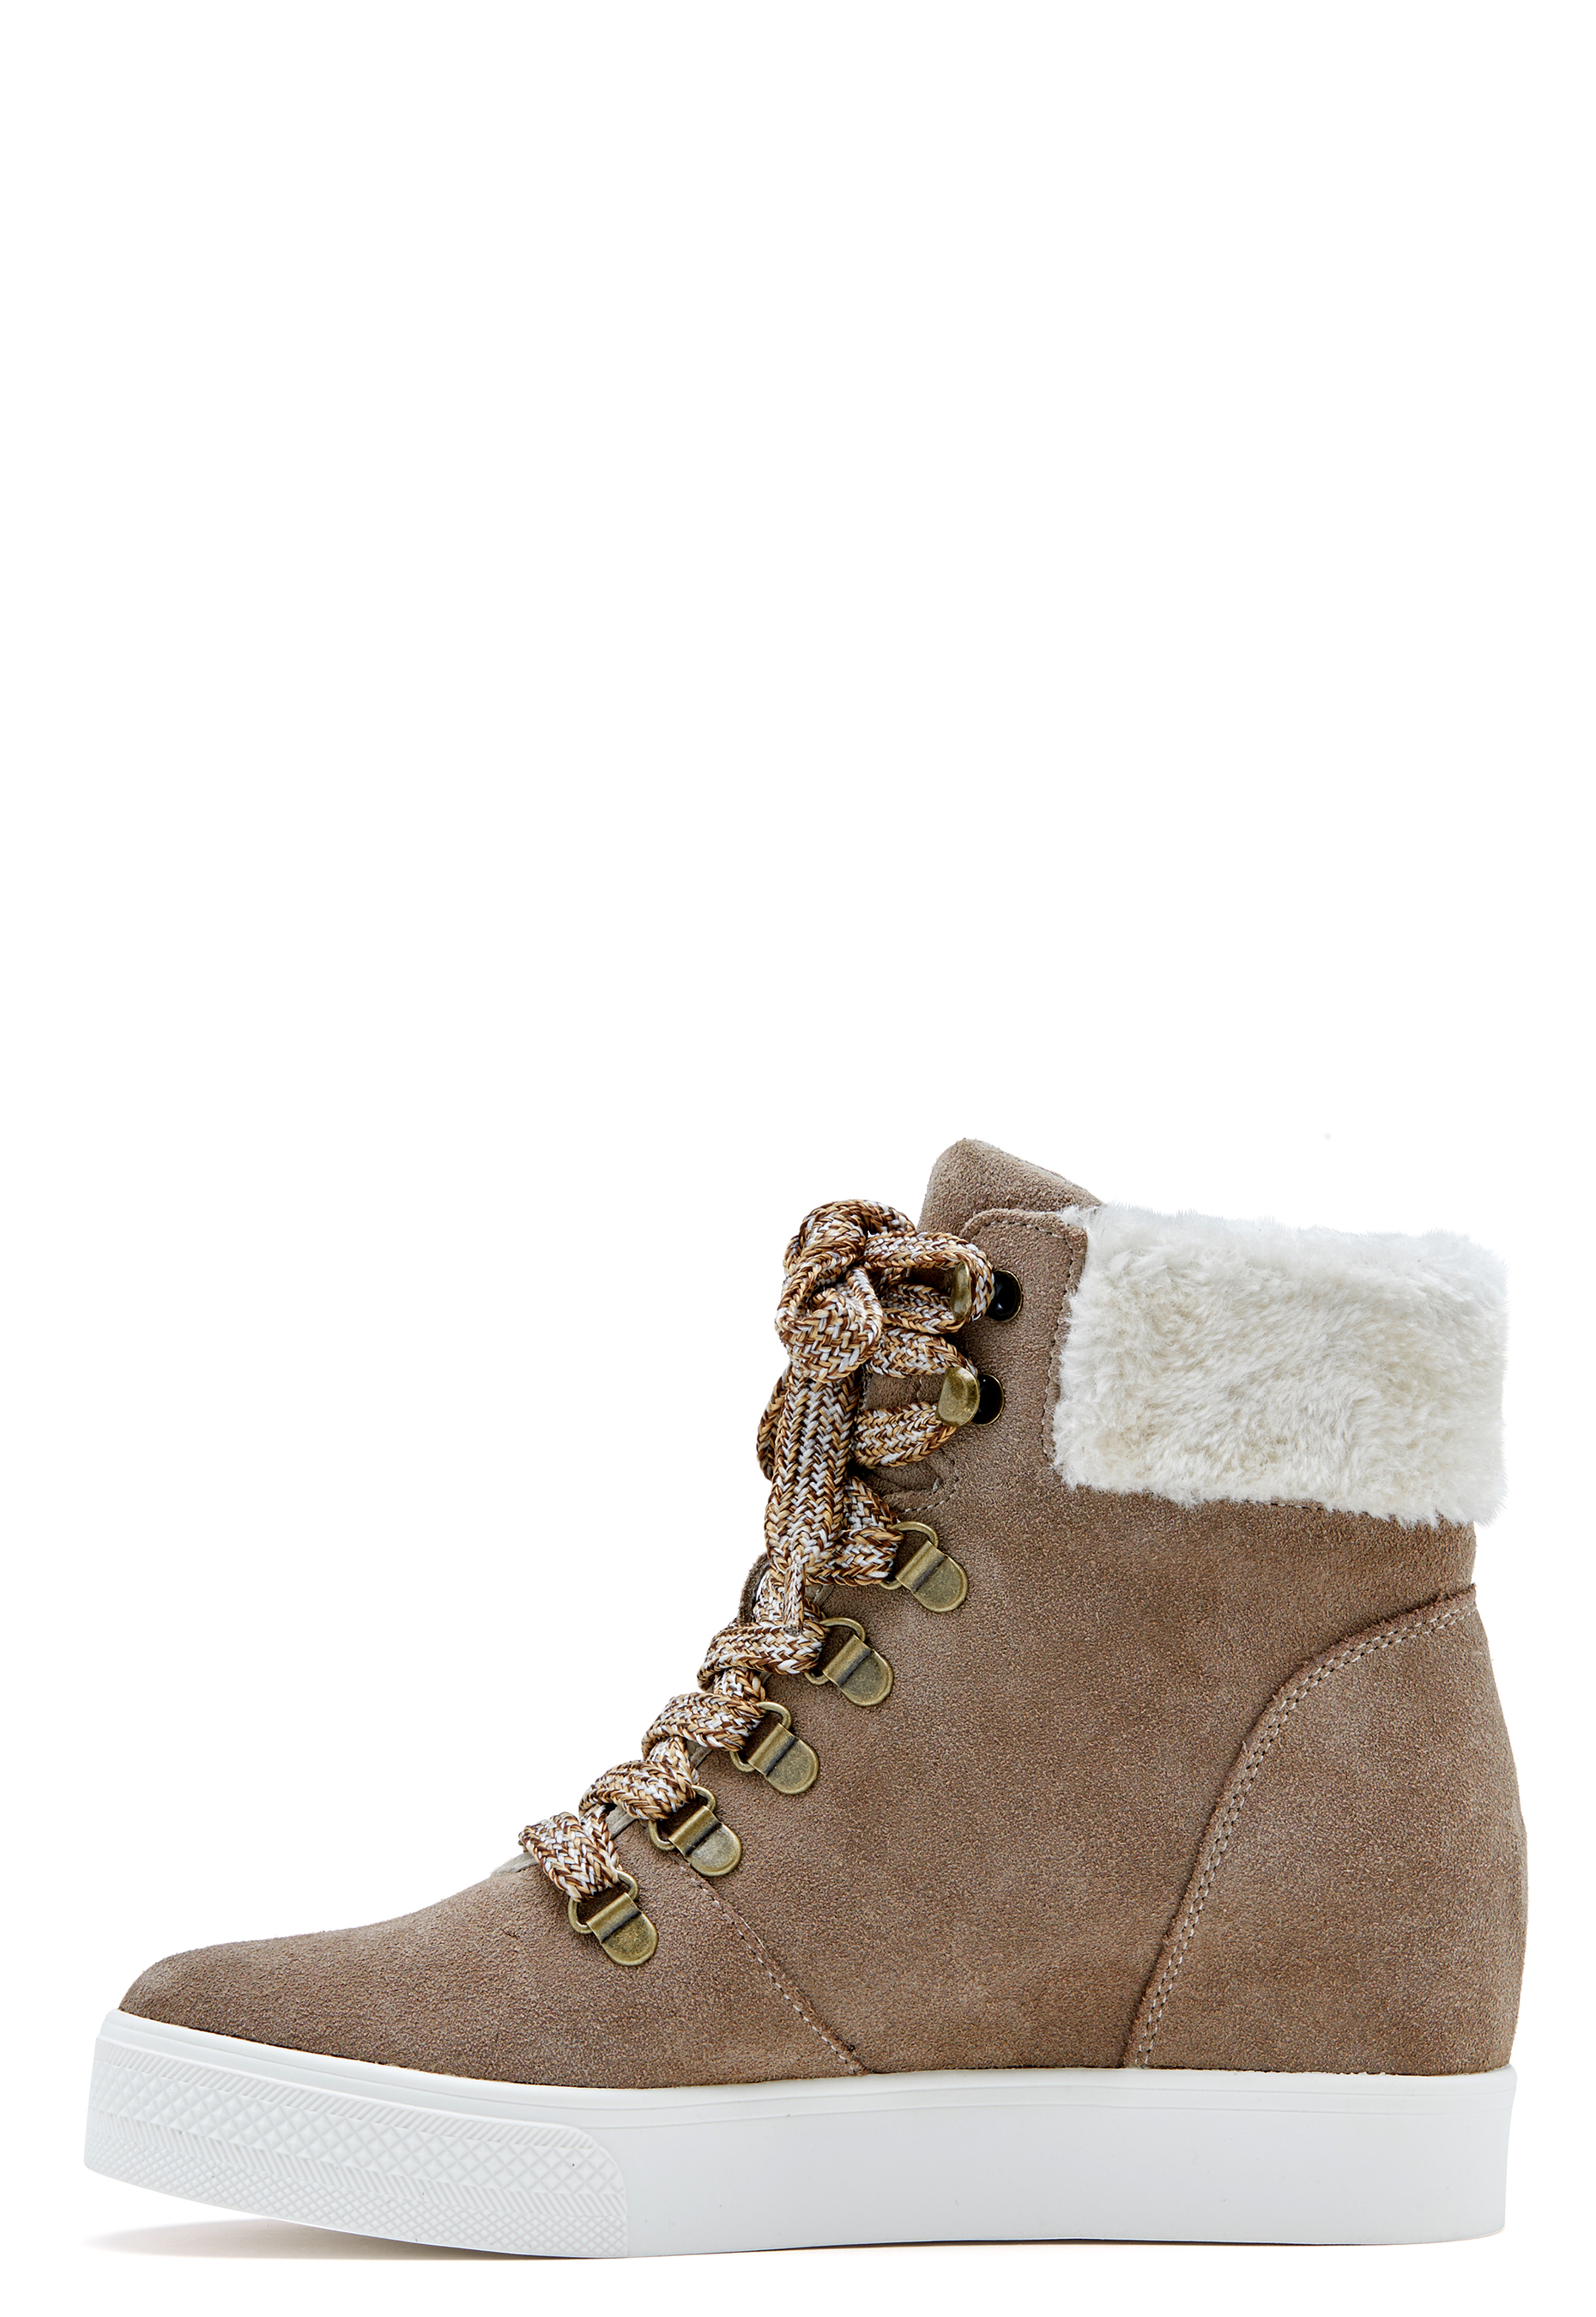 edb32861c90a Steve Madden Windy Suede Boots Taupe - Bubbleroom